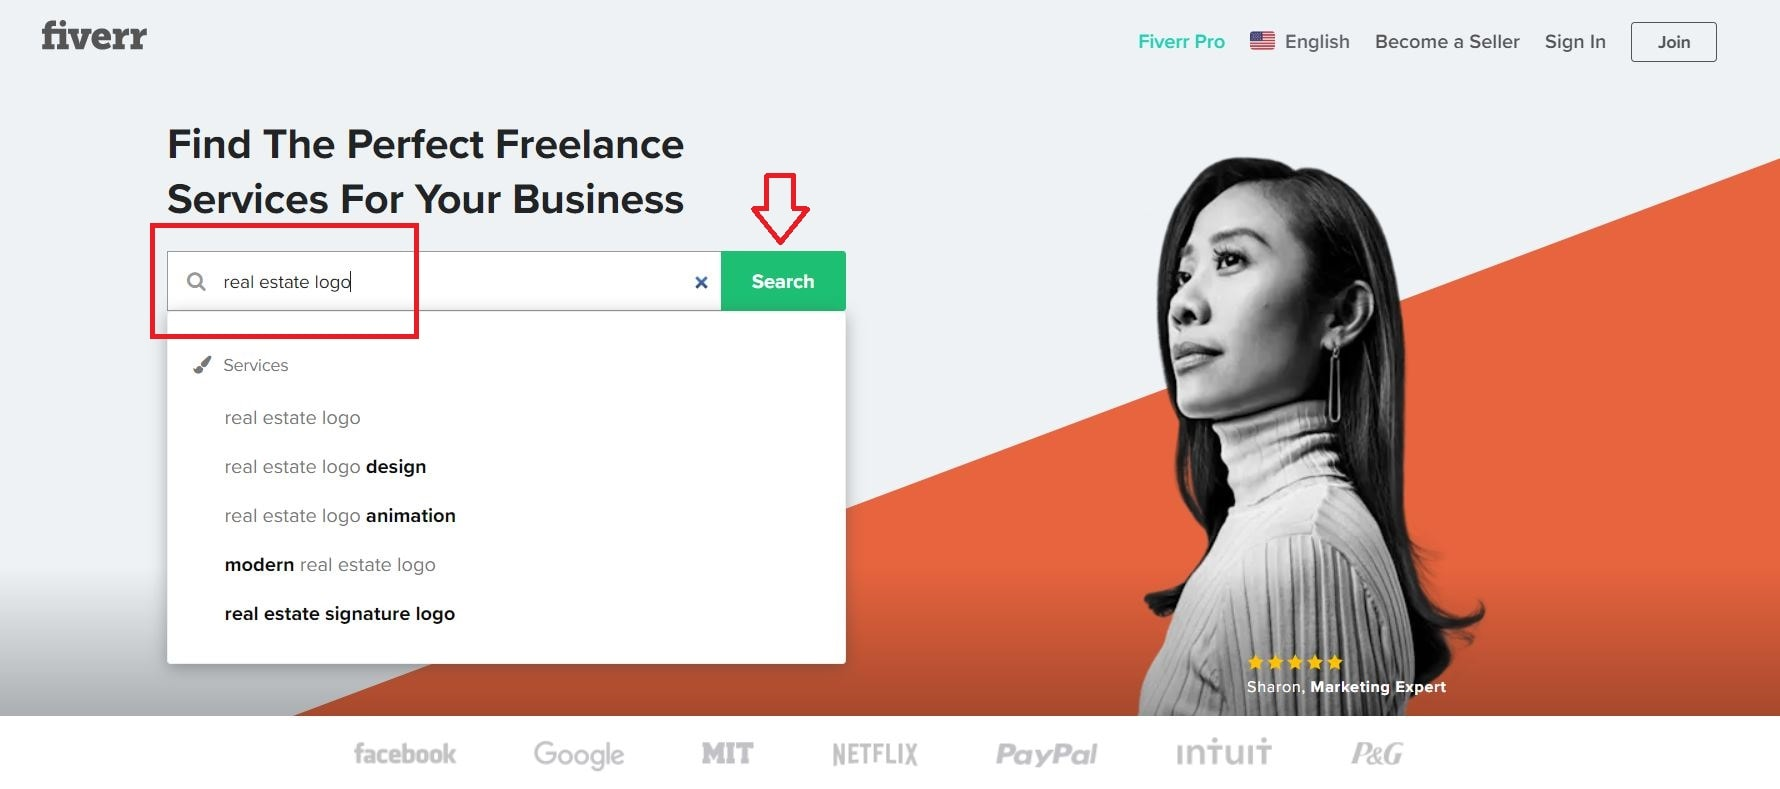 Fiverr screenshot - homepage search bar